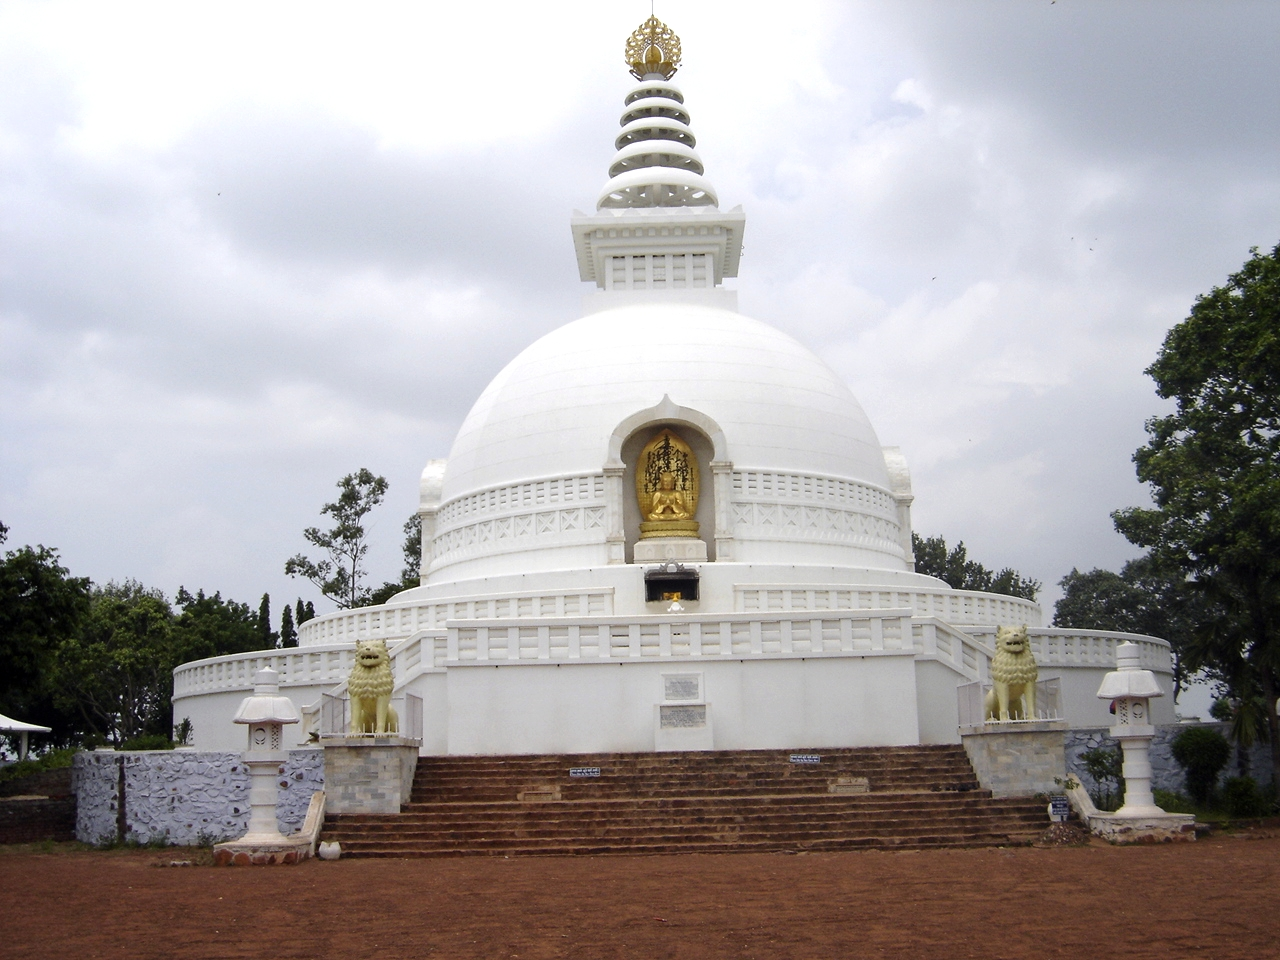 Vishwa Shanti Stupa (World Peace Pagoda) on Vulture Peak, Rajgir.